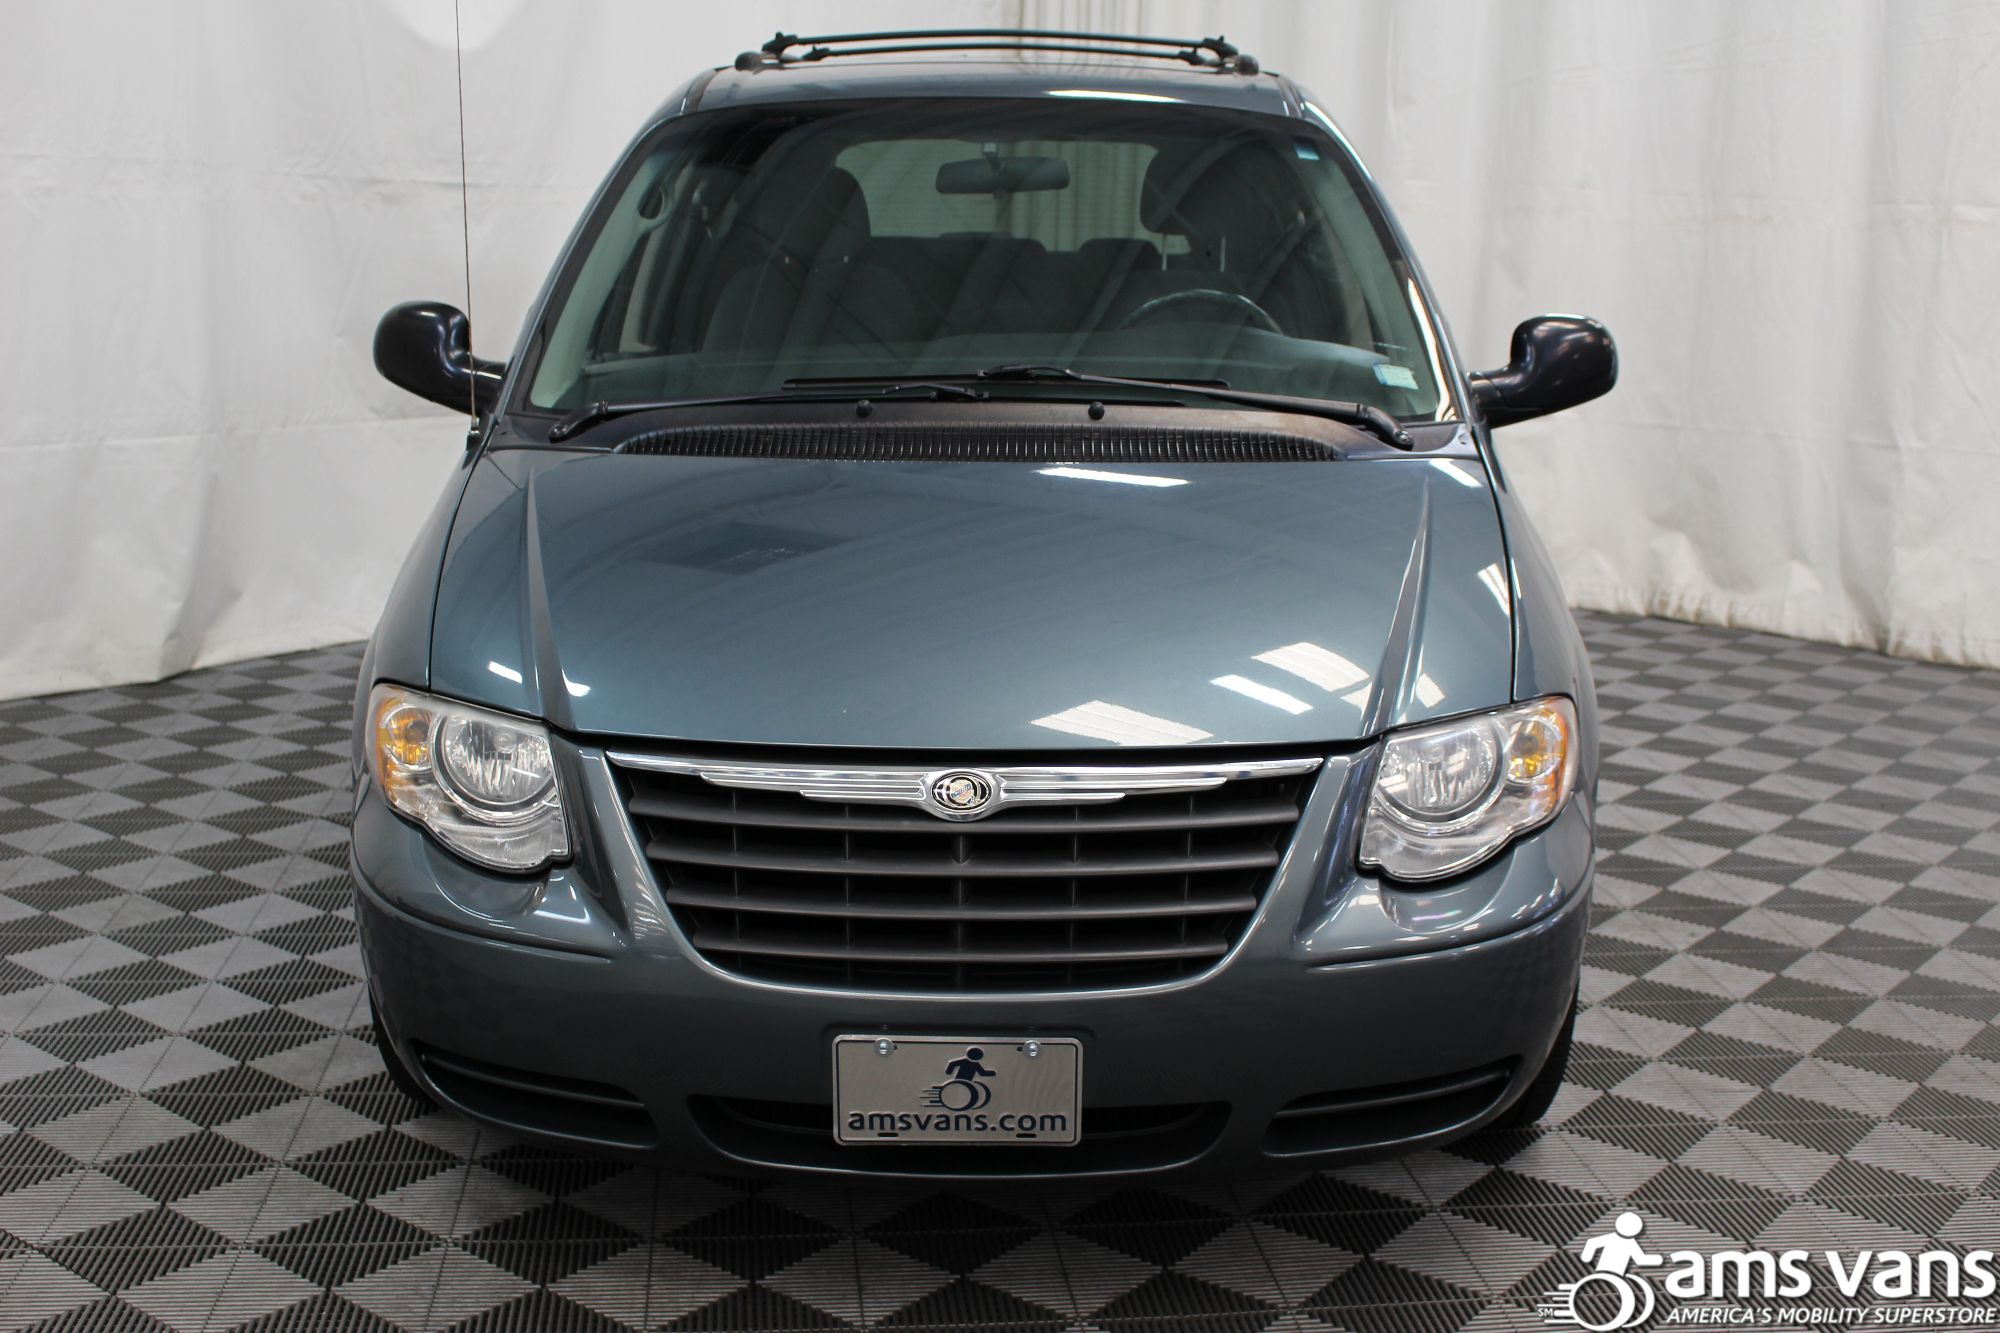 2005 Chrysler Town and Country Touring Wheelchair Van For Sale #11